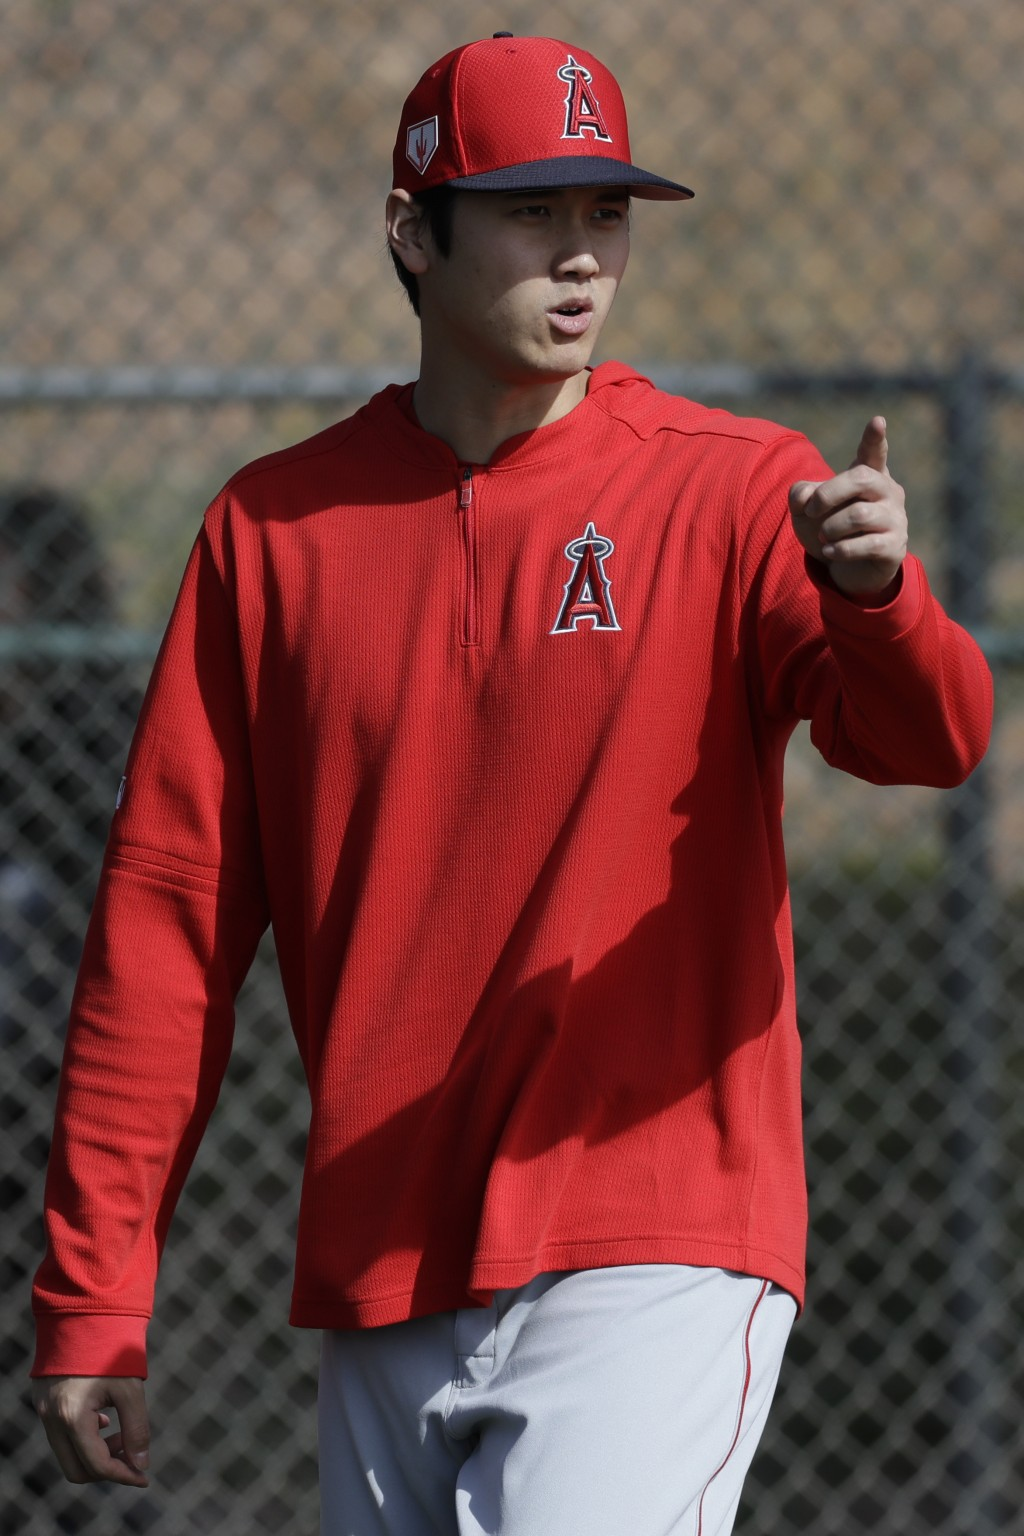 Los Angeles Angels' Shohei Ohtani, of Japan, walks on the practice field during spring training baseball in Tempe, Ariz., Friday, Feb. 15, 2019. (AP P...